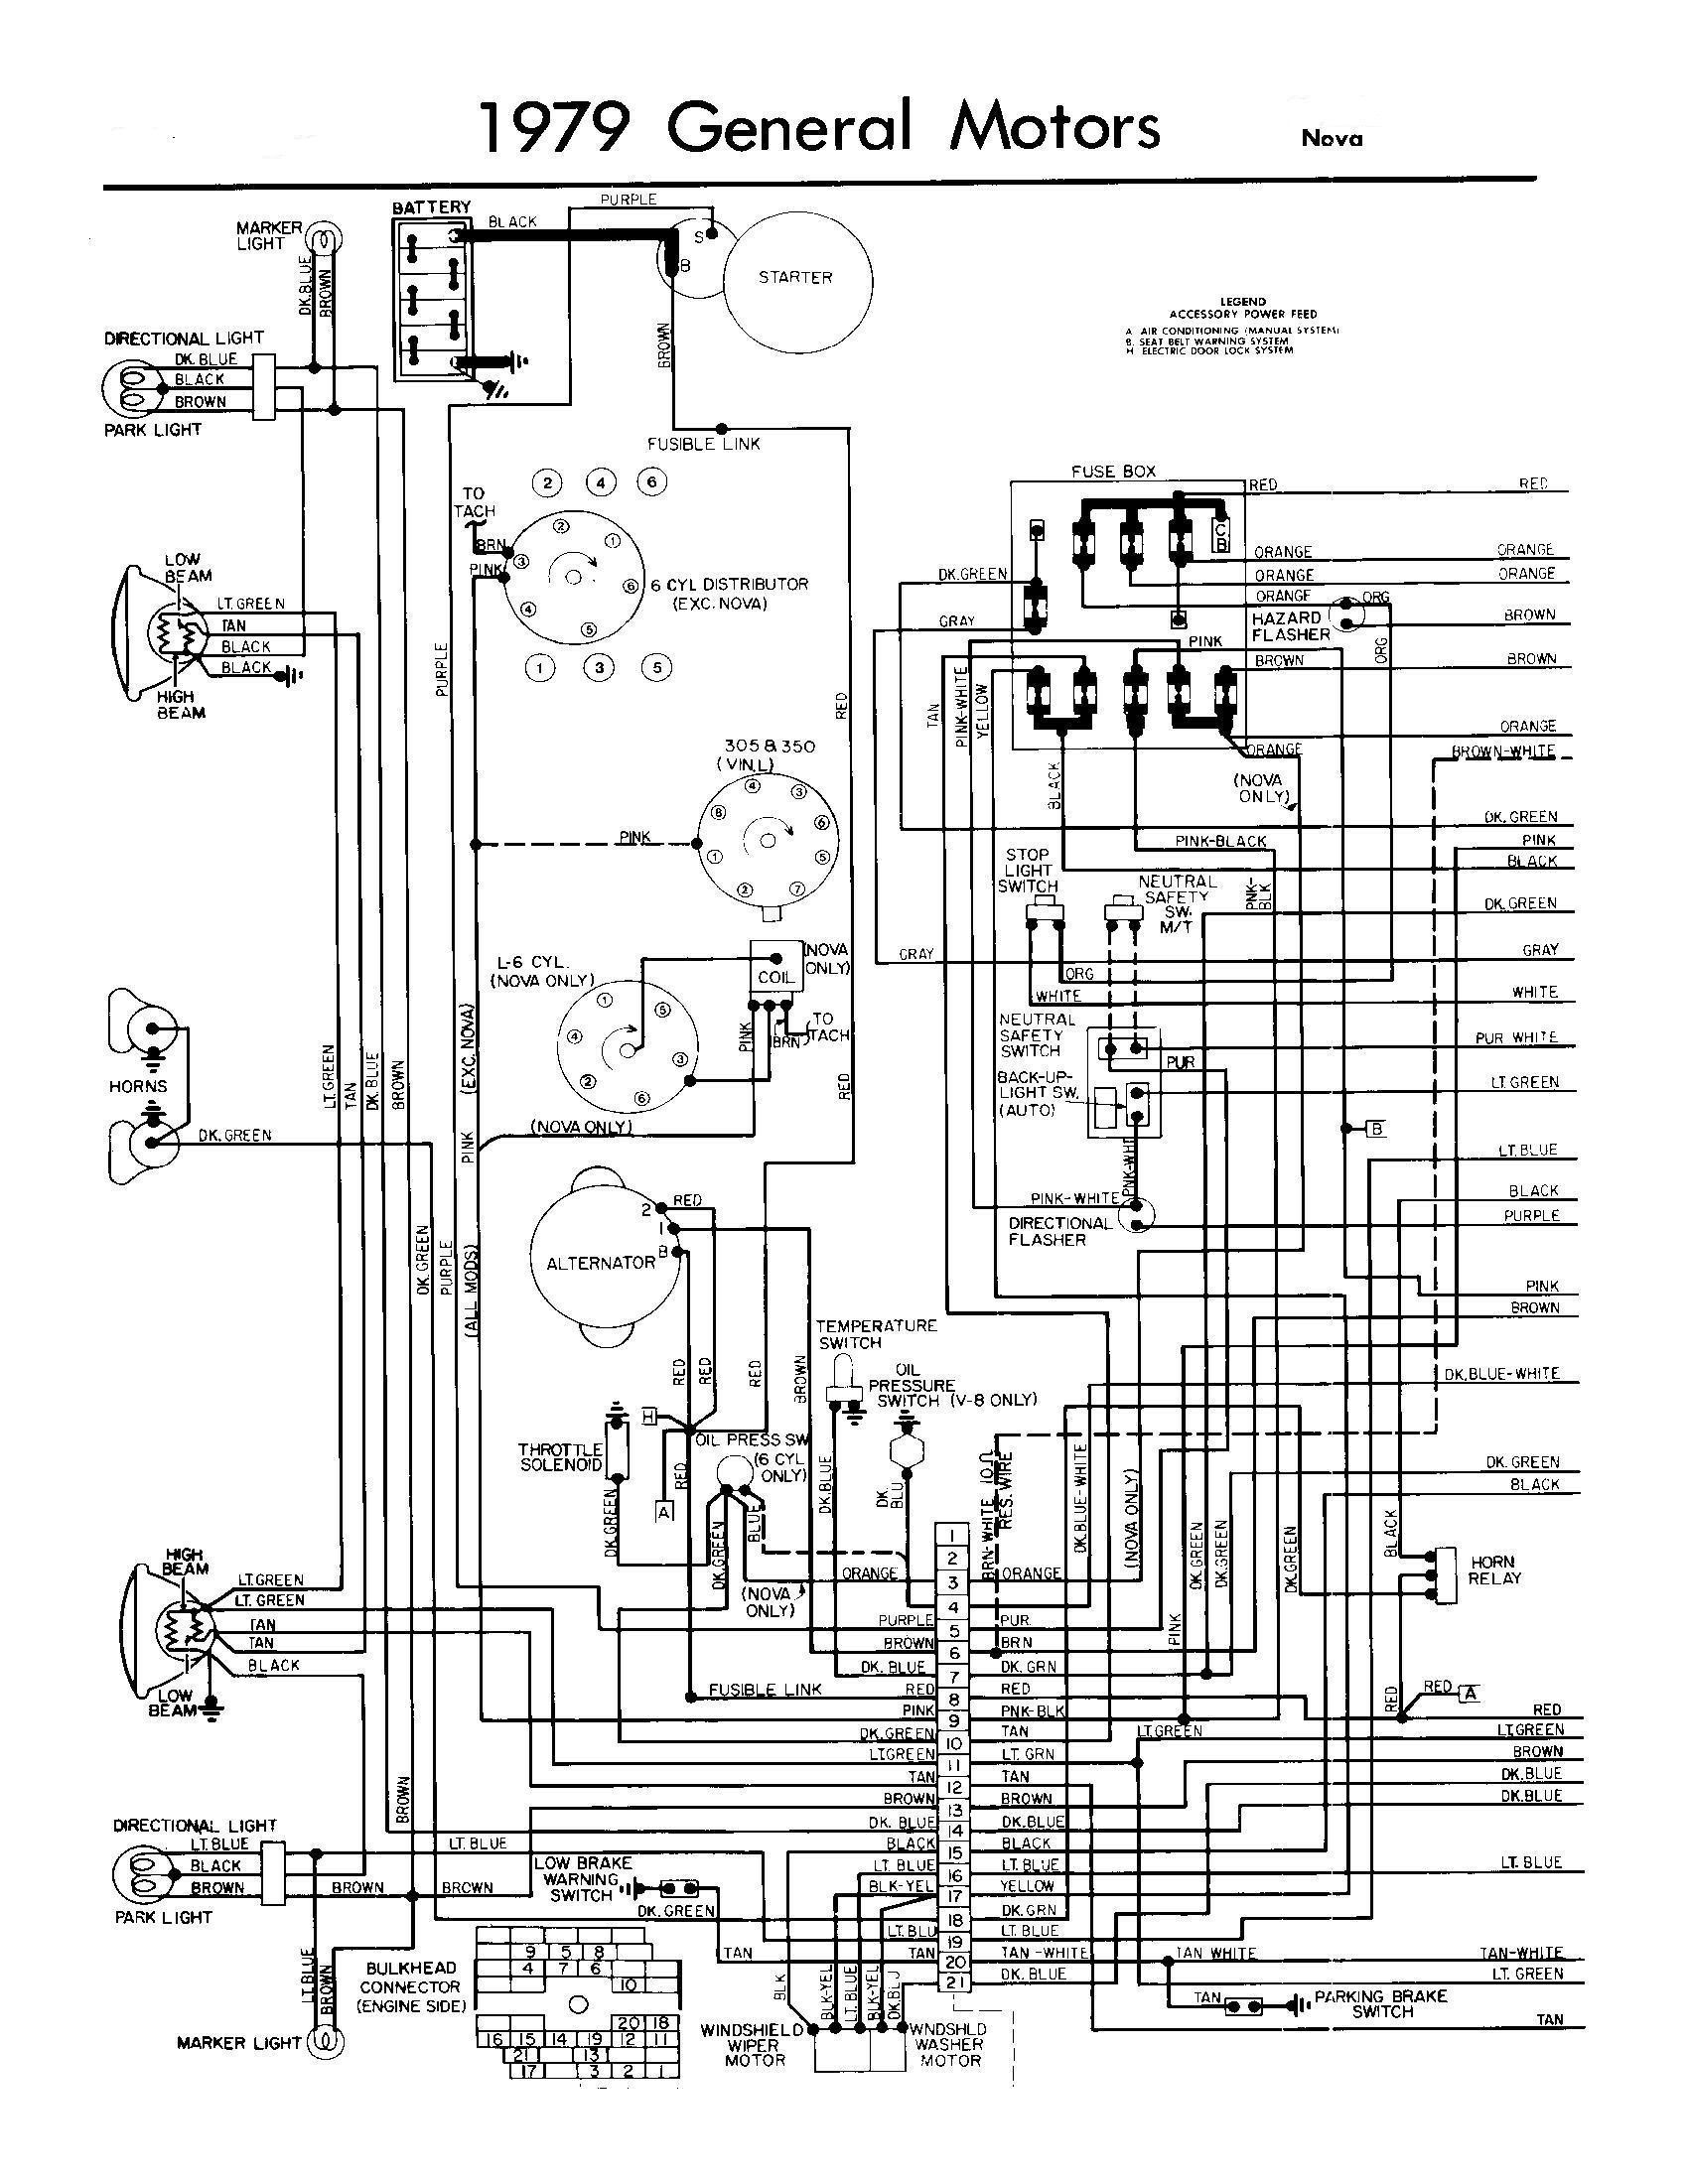 1975 chevrolet truck wiring diagram